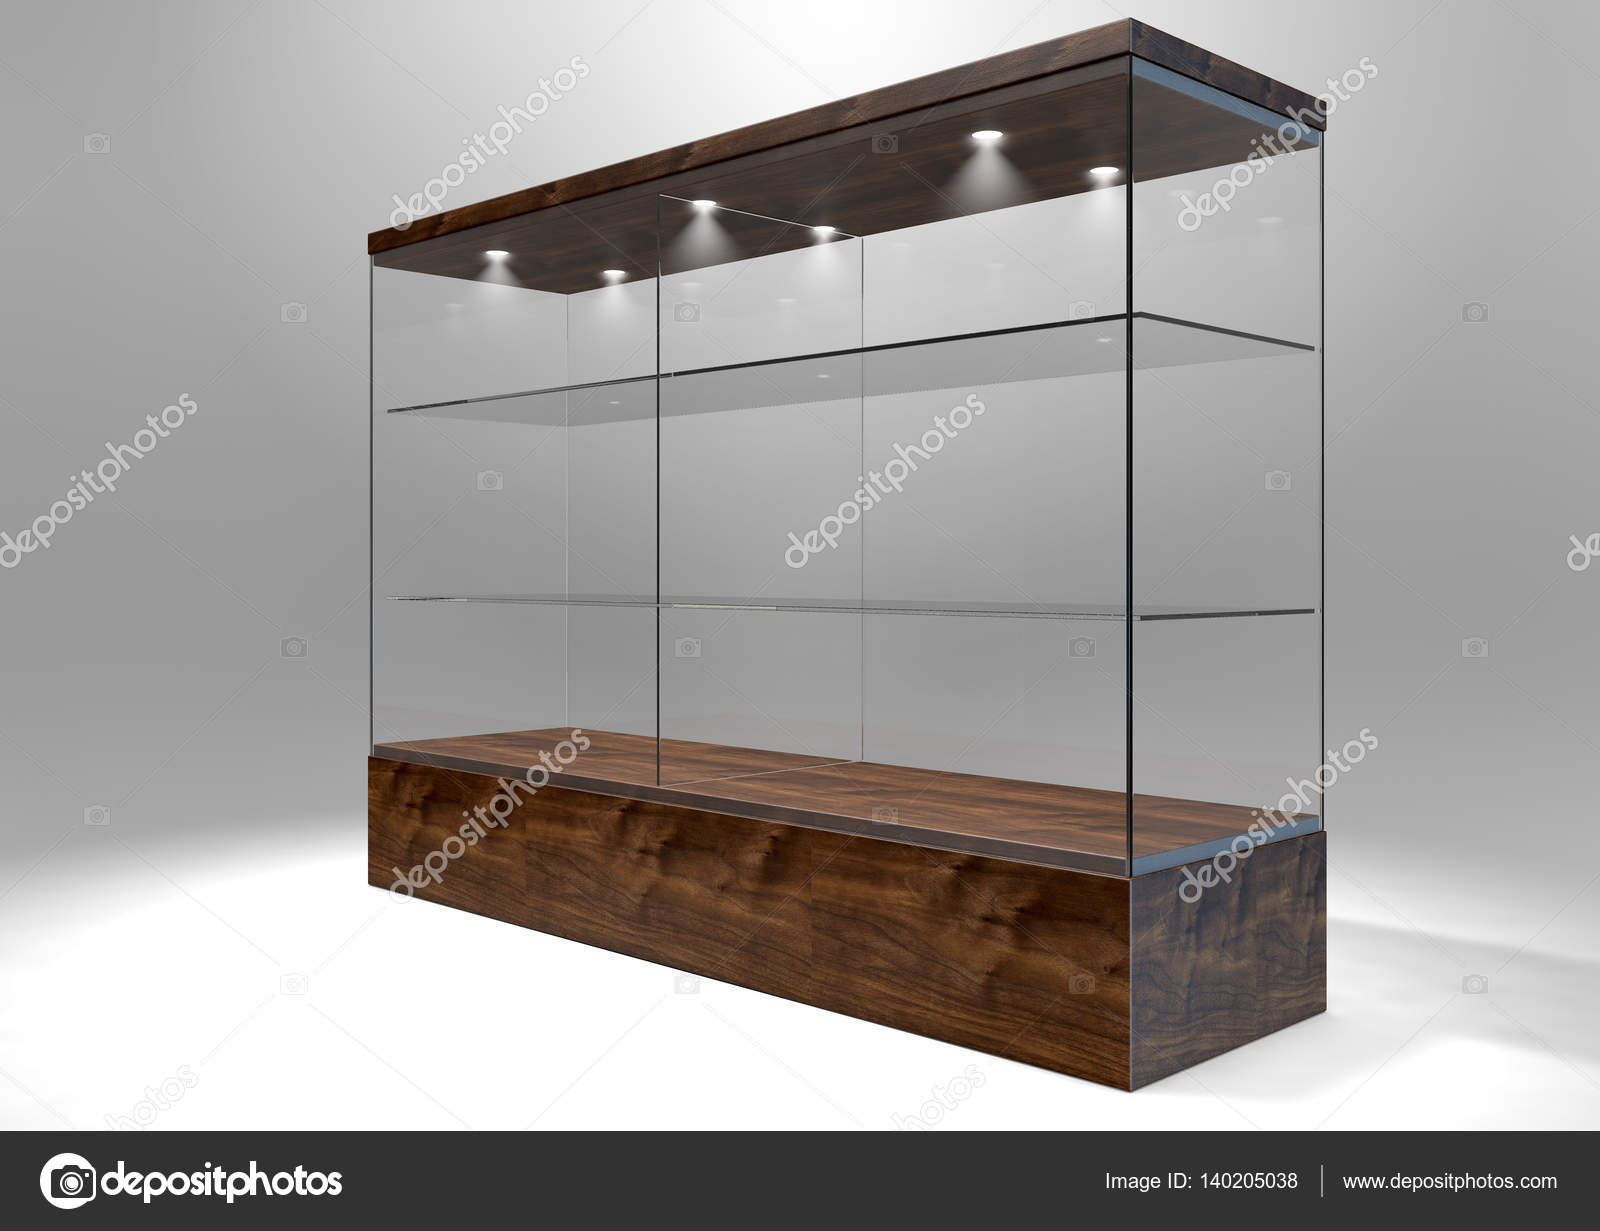 vitrine verre photographie albund 140205038. Black Bedroom Furniture Sets. Home Design Ideas